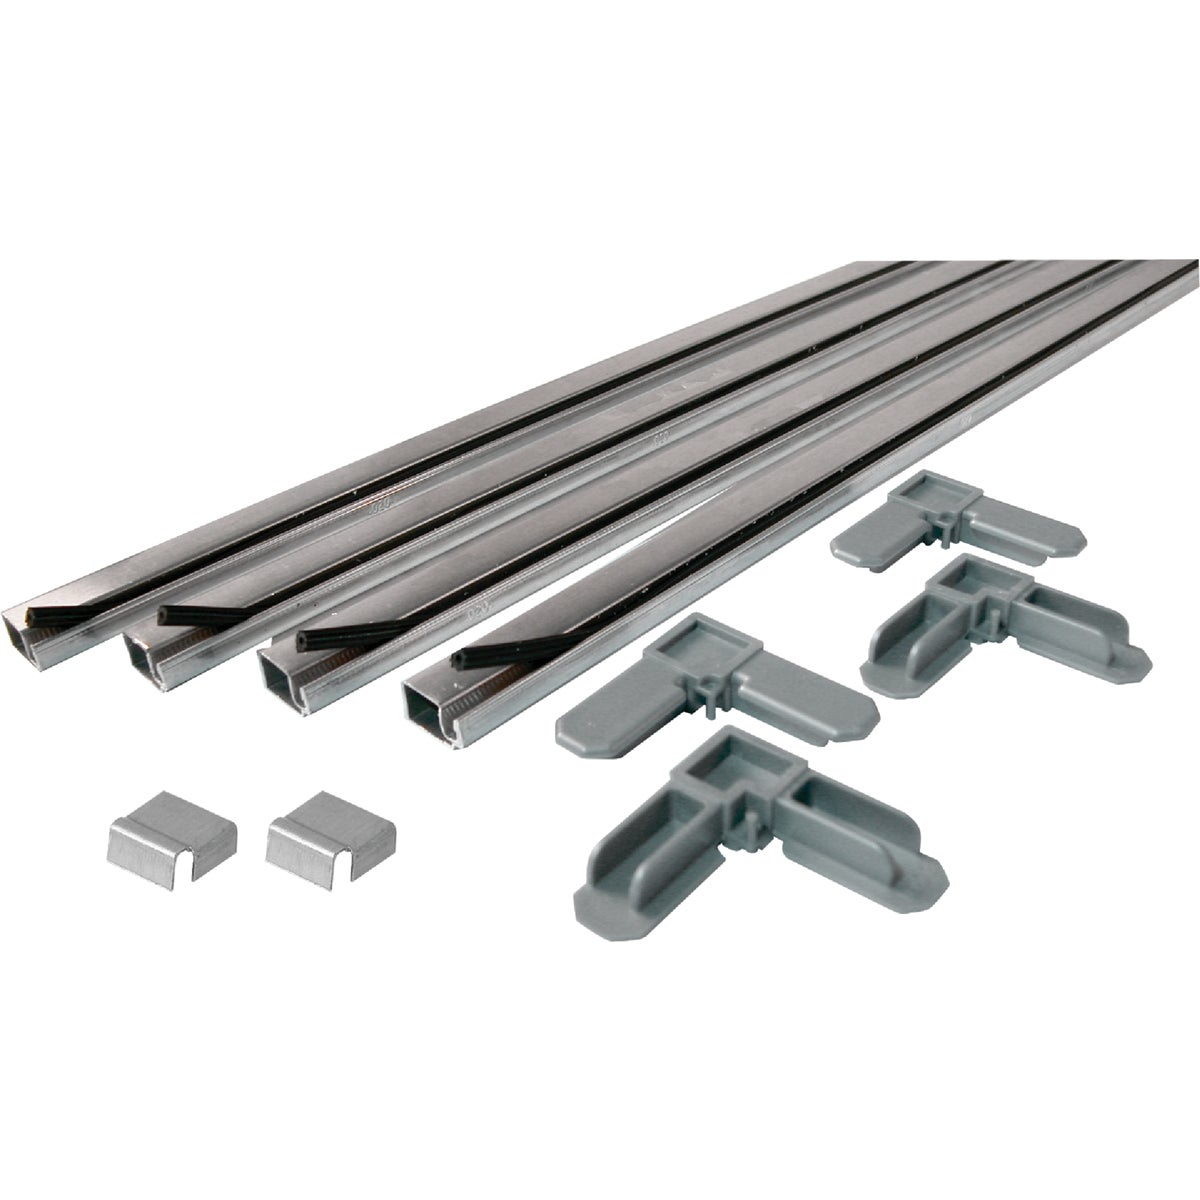 7/16X3/4X3'SCN FRAME KIT - PL7800 by Prime Line Products